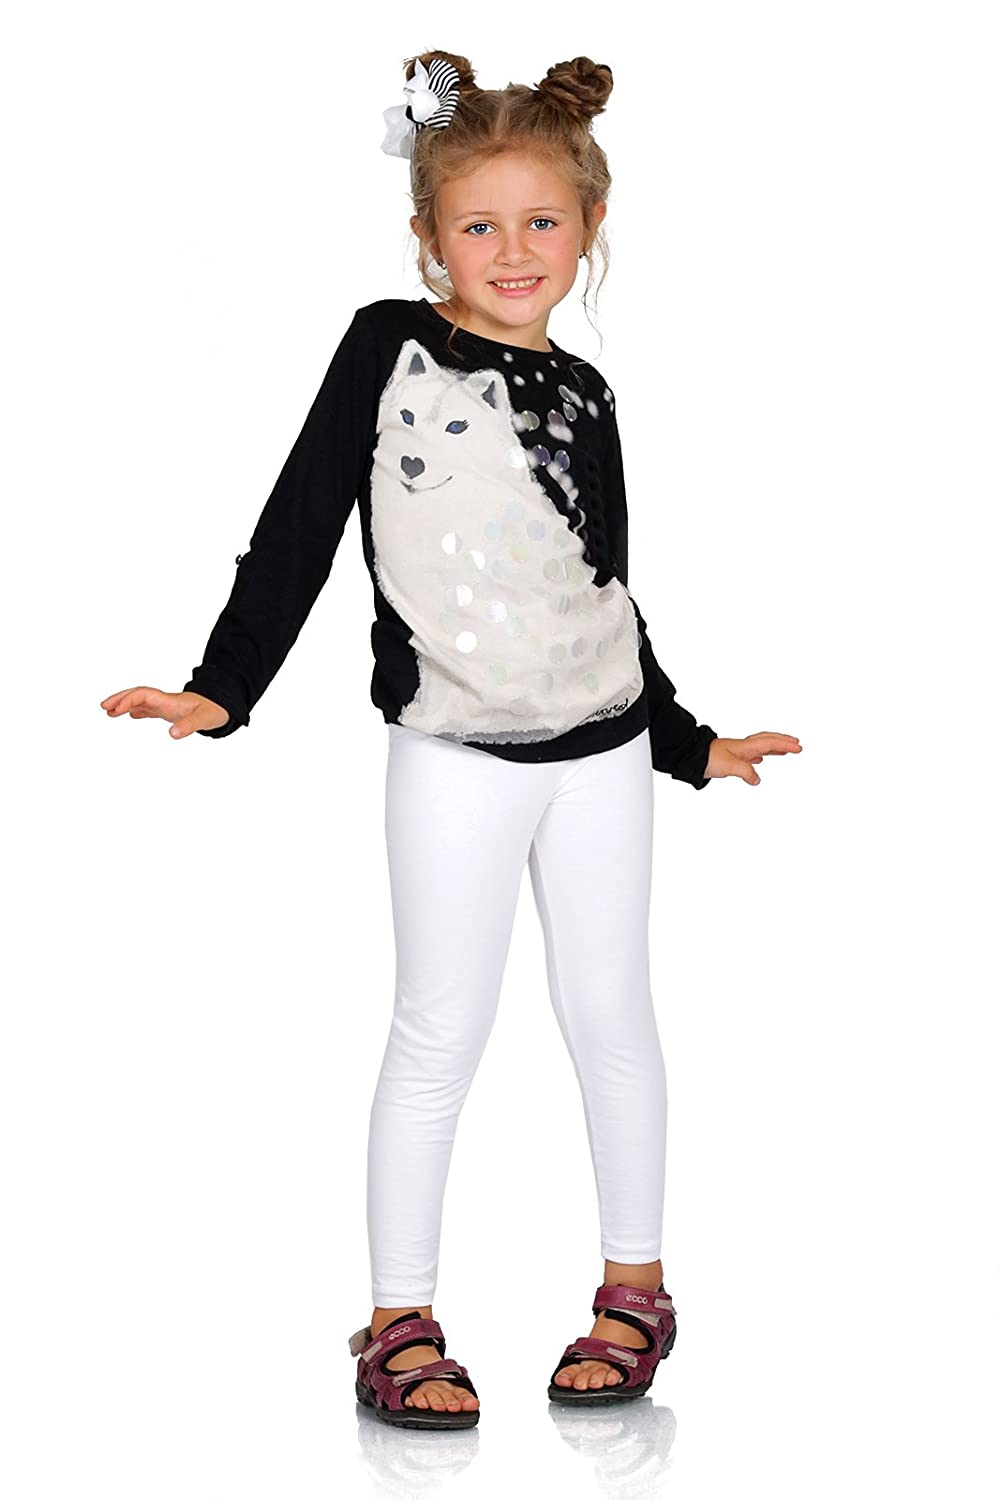 Futuro Fashion Full Length Cotton Girls Leggings Plain Pants for Kids White Leggings Age 13